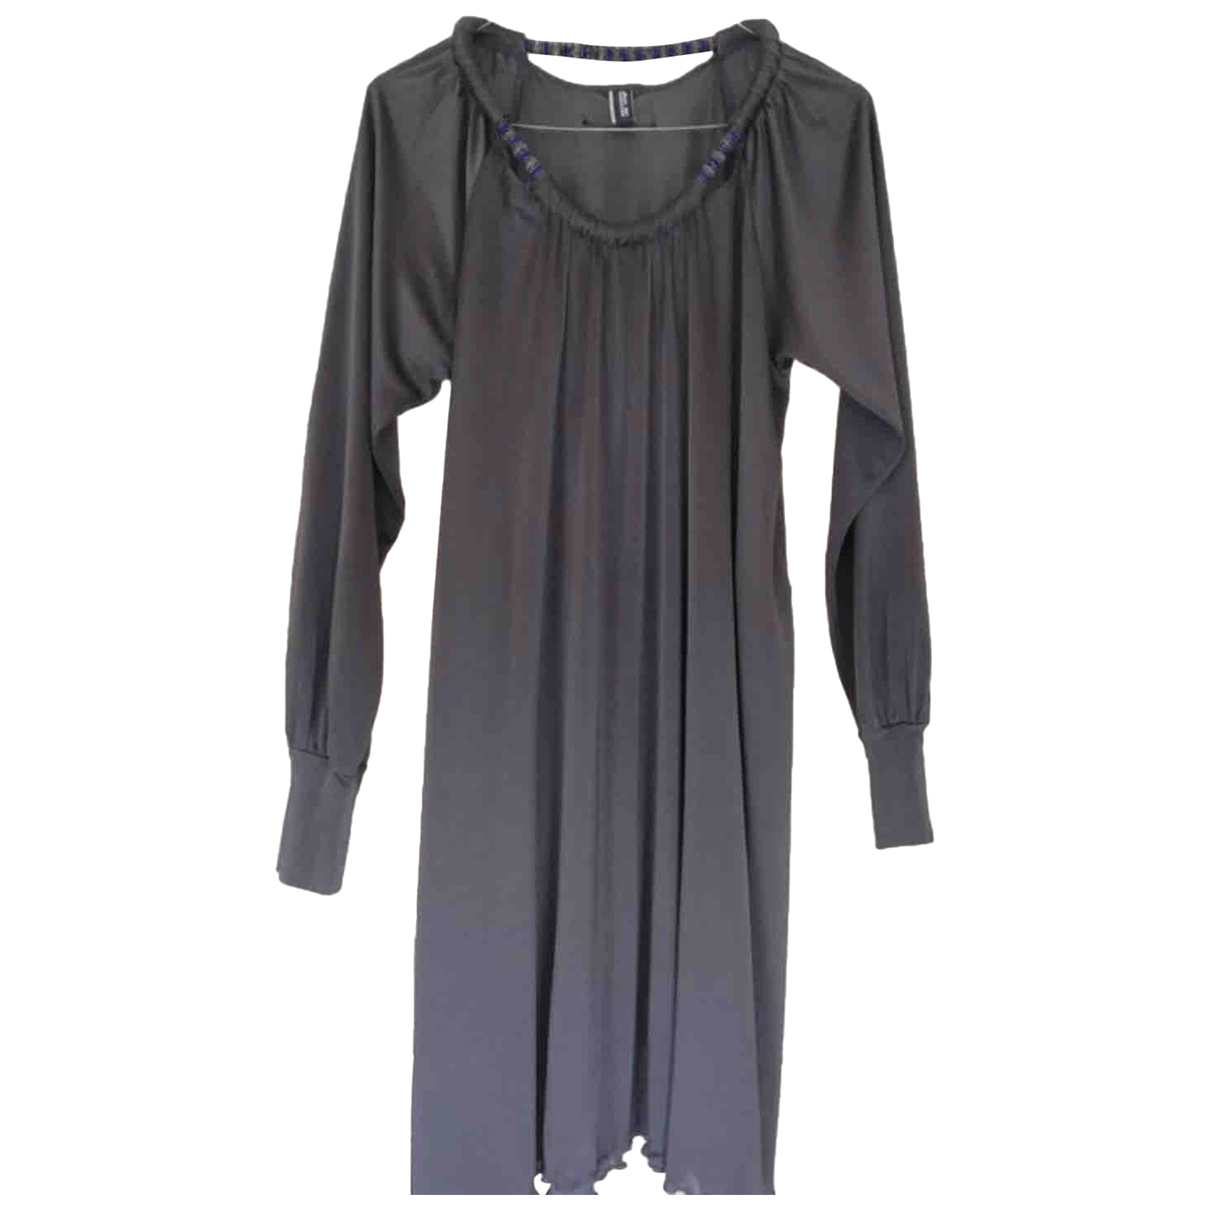 Jean Paul Gaultier \N Metallic dress for Women S International